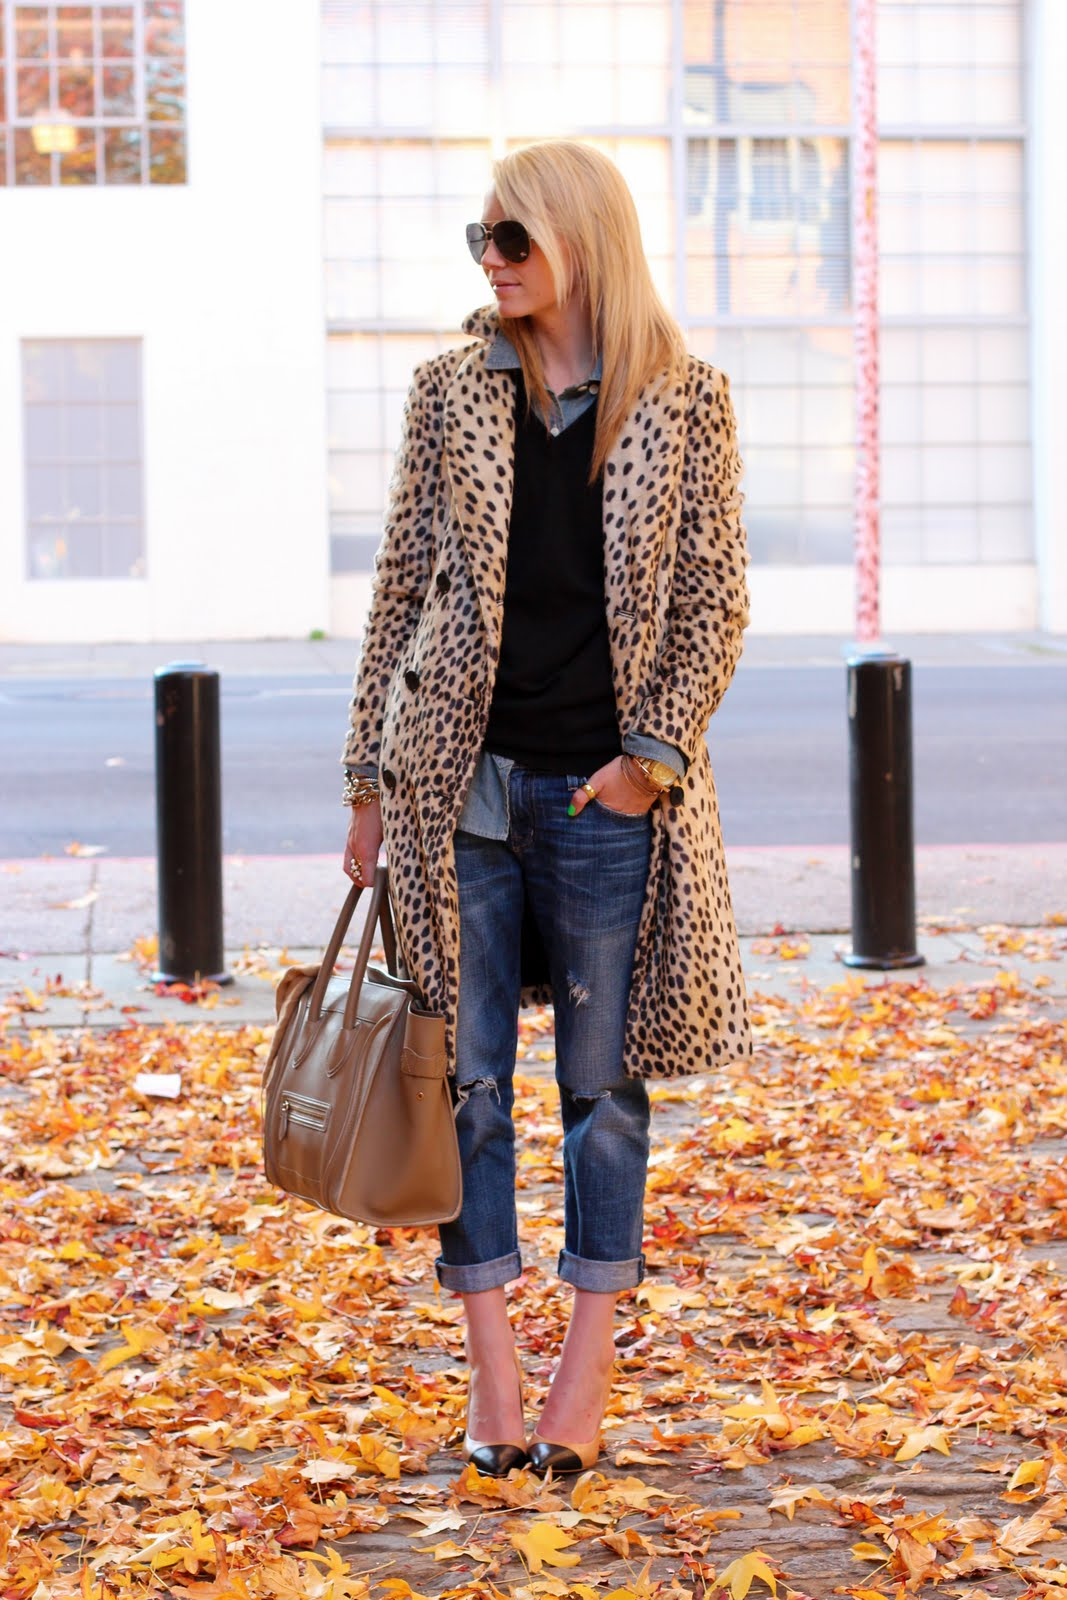 Blair Eadie In Leopard Print Jacket From Malene Birger, Denim Jeans From Current/Elliott, Shirt And Sweater From JCrew, And Burberry Sunglasses